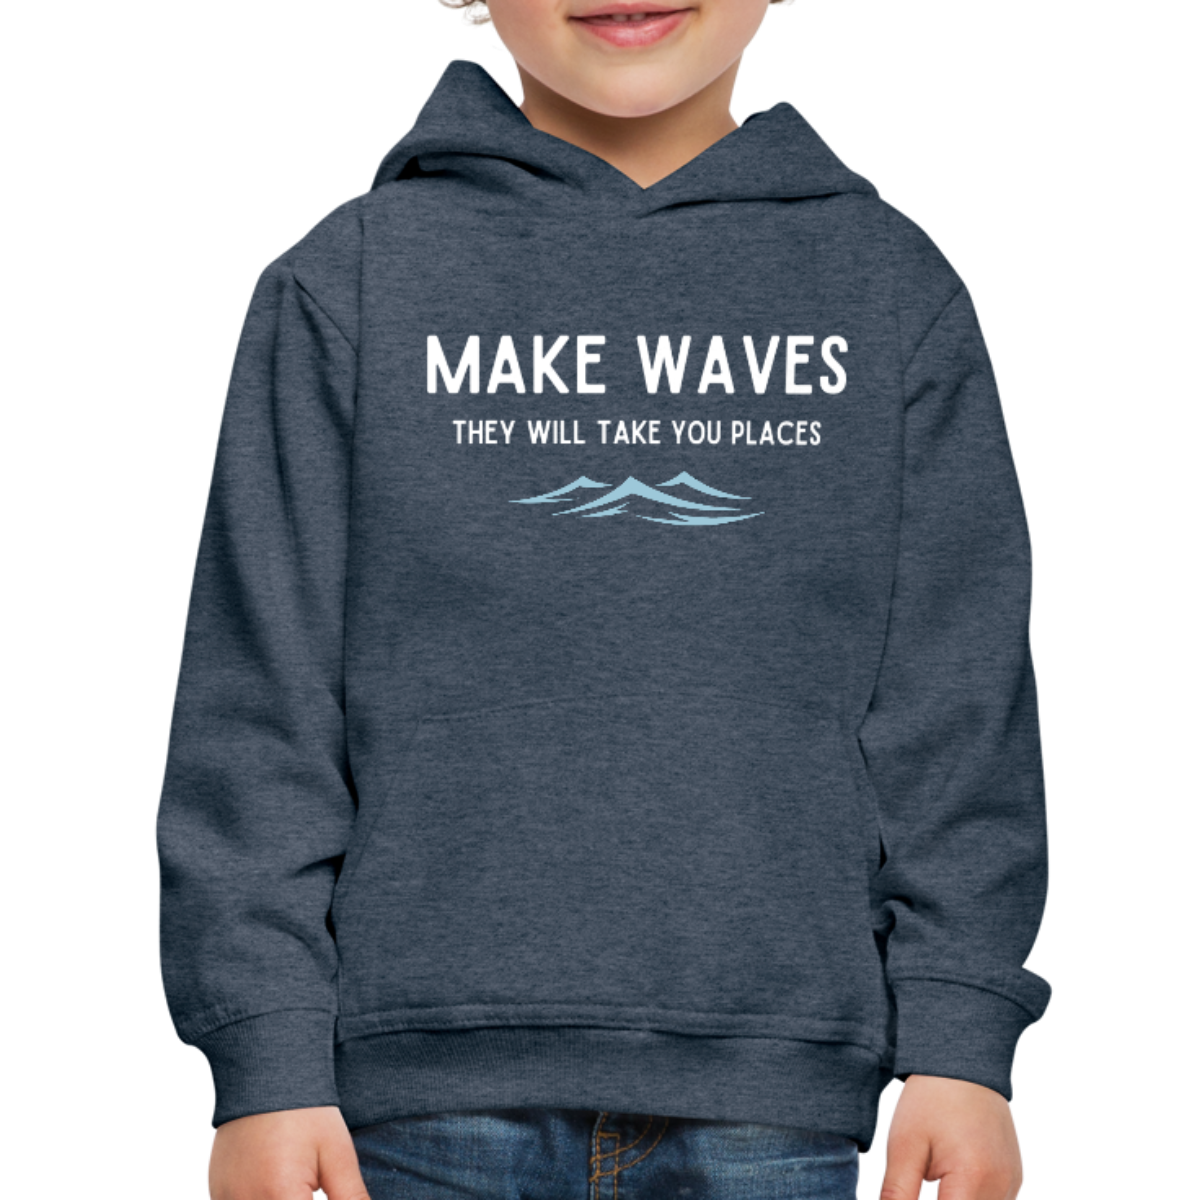 Make Waves, they will take you places - Kids' Hoodie